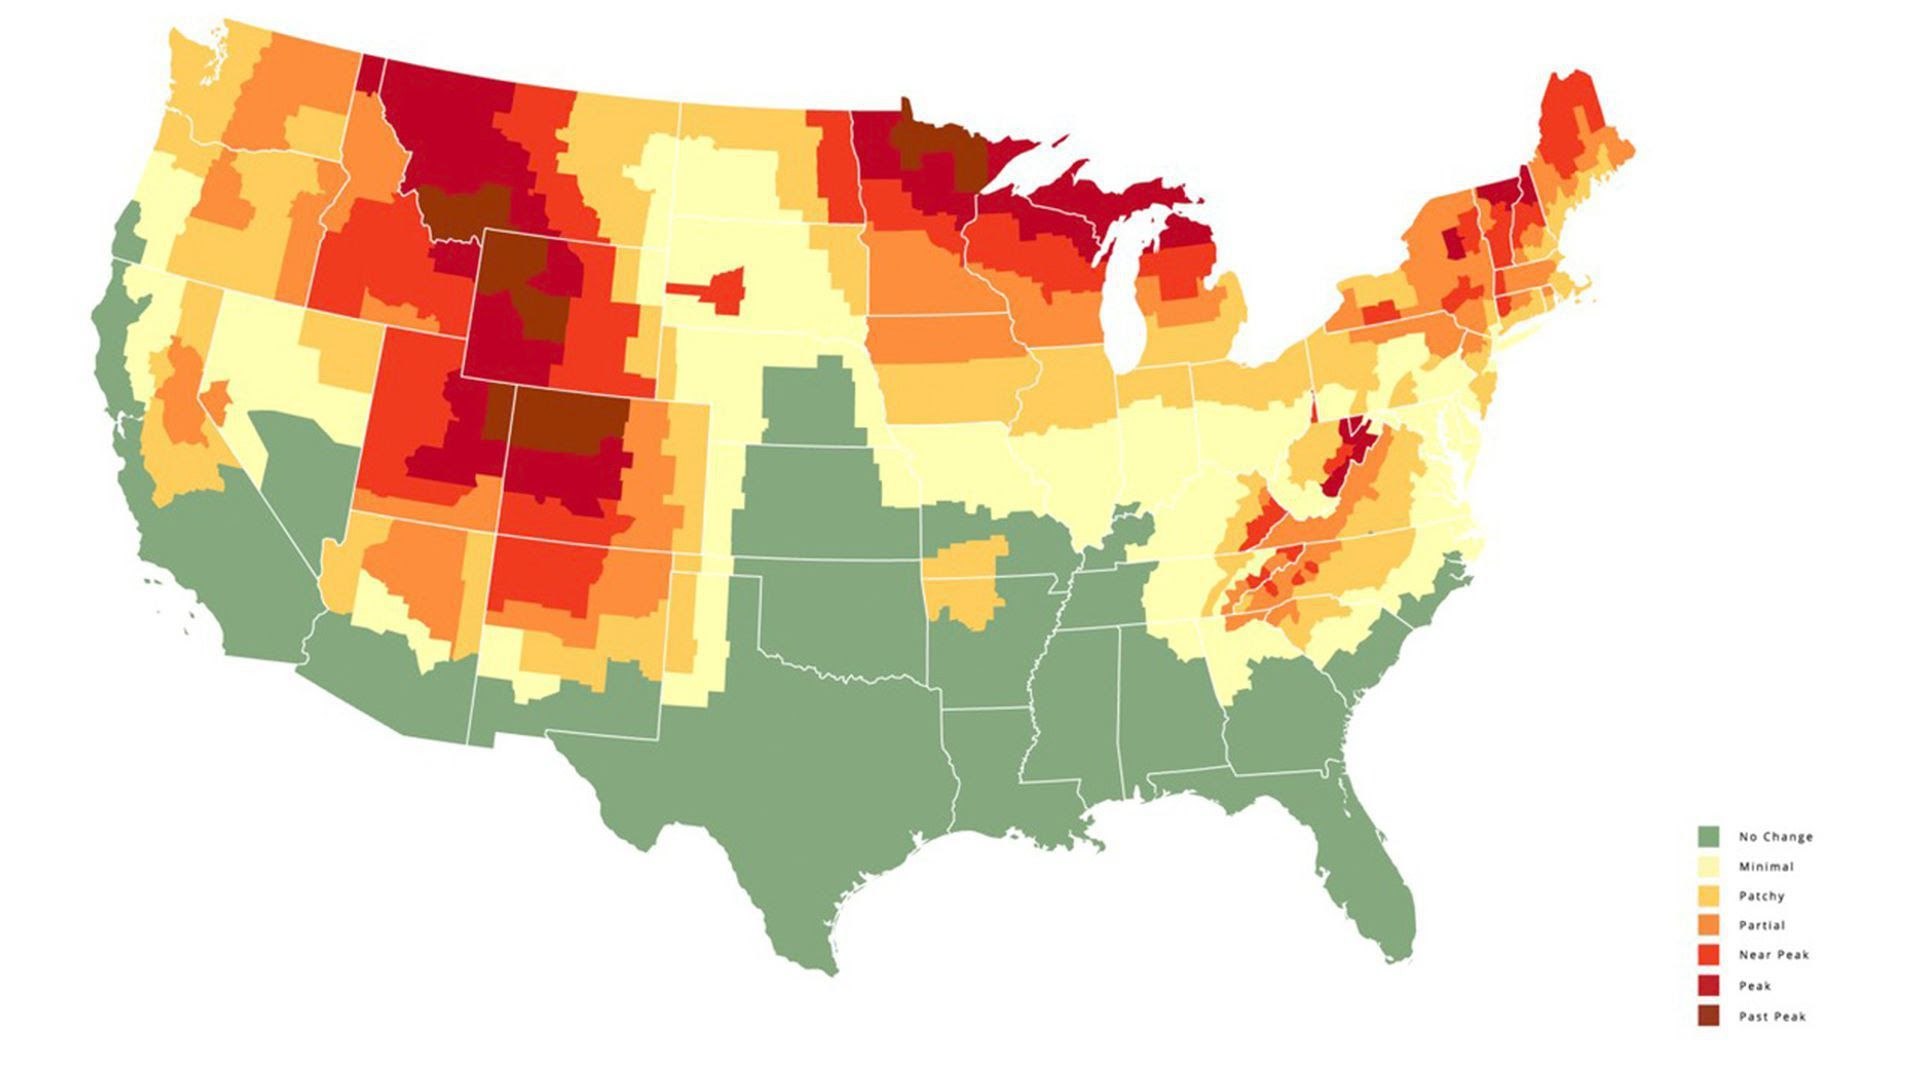 A map showing the fall color forecast across the U.S.